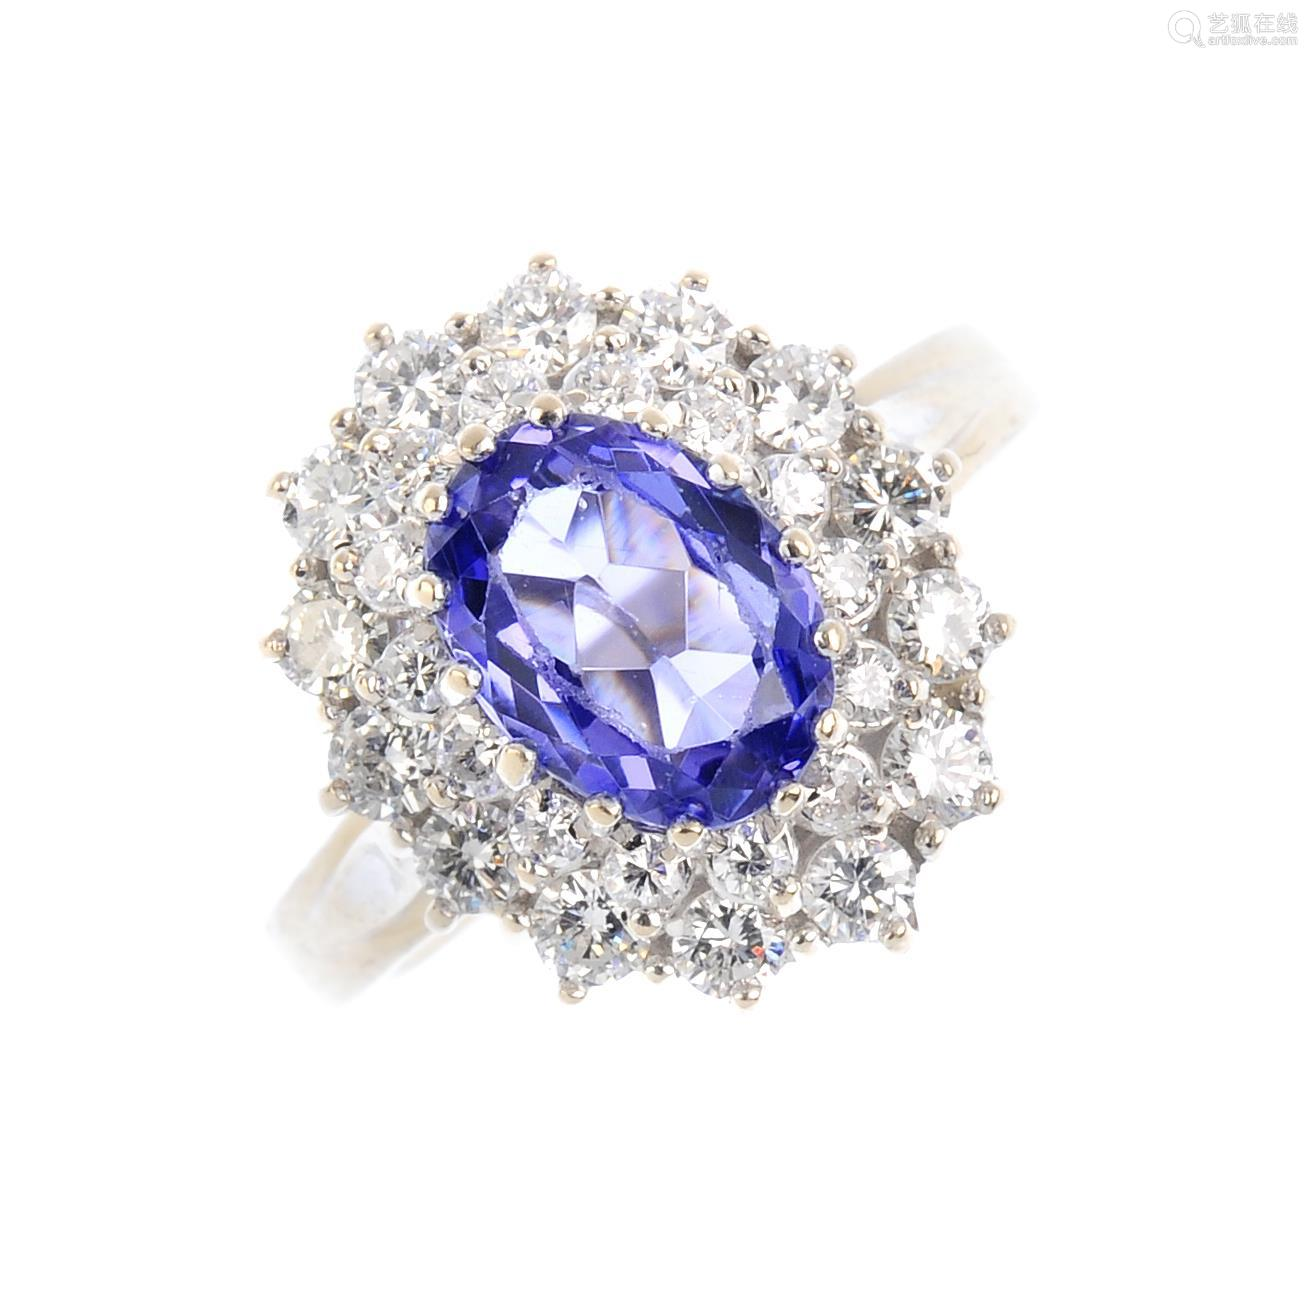 An 18ct gold tanzanite and diamond cluster ring. The oval-shape tanzanite, with brilliant-cut